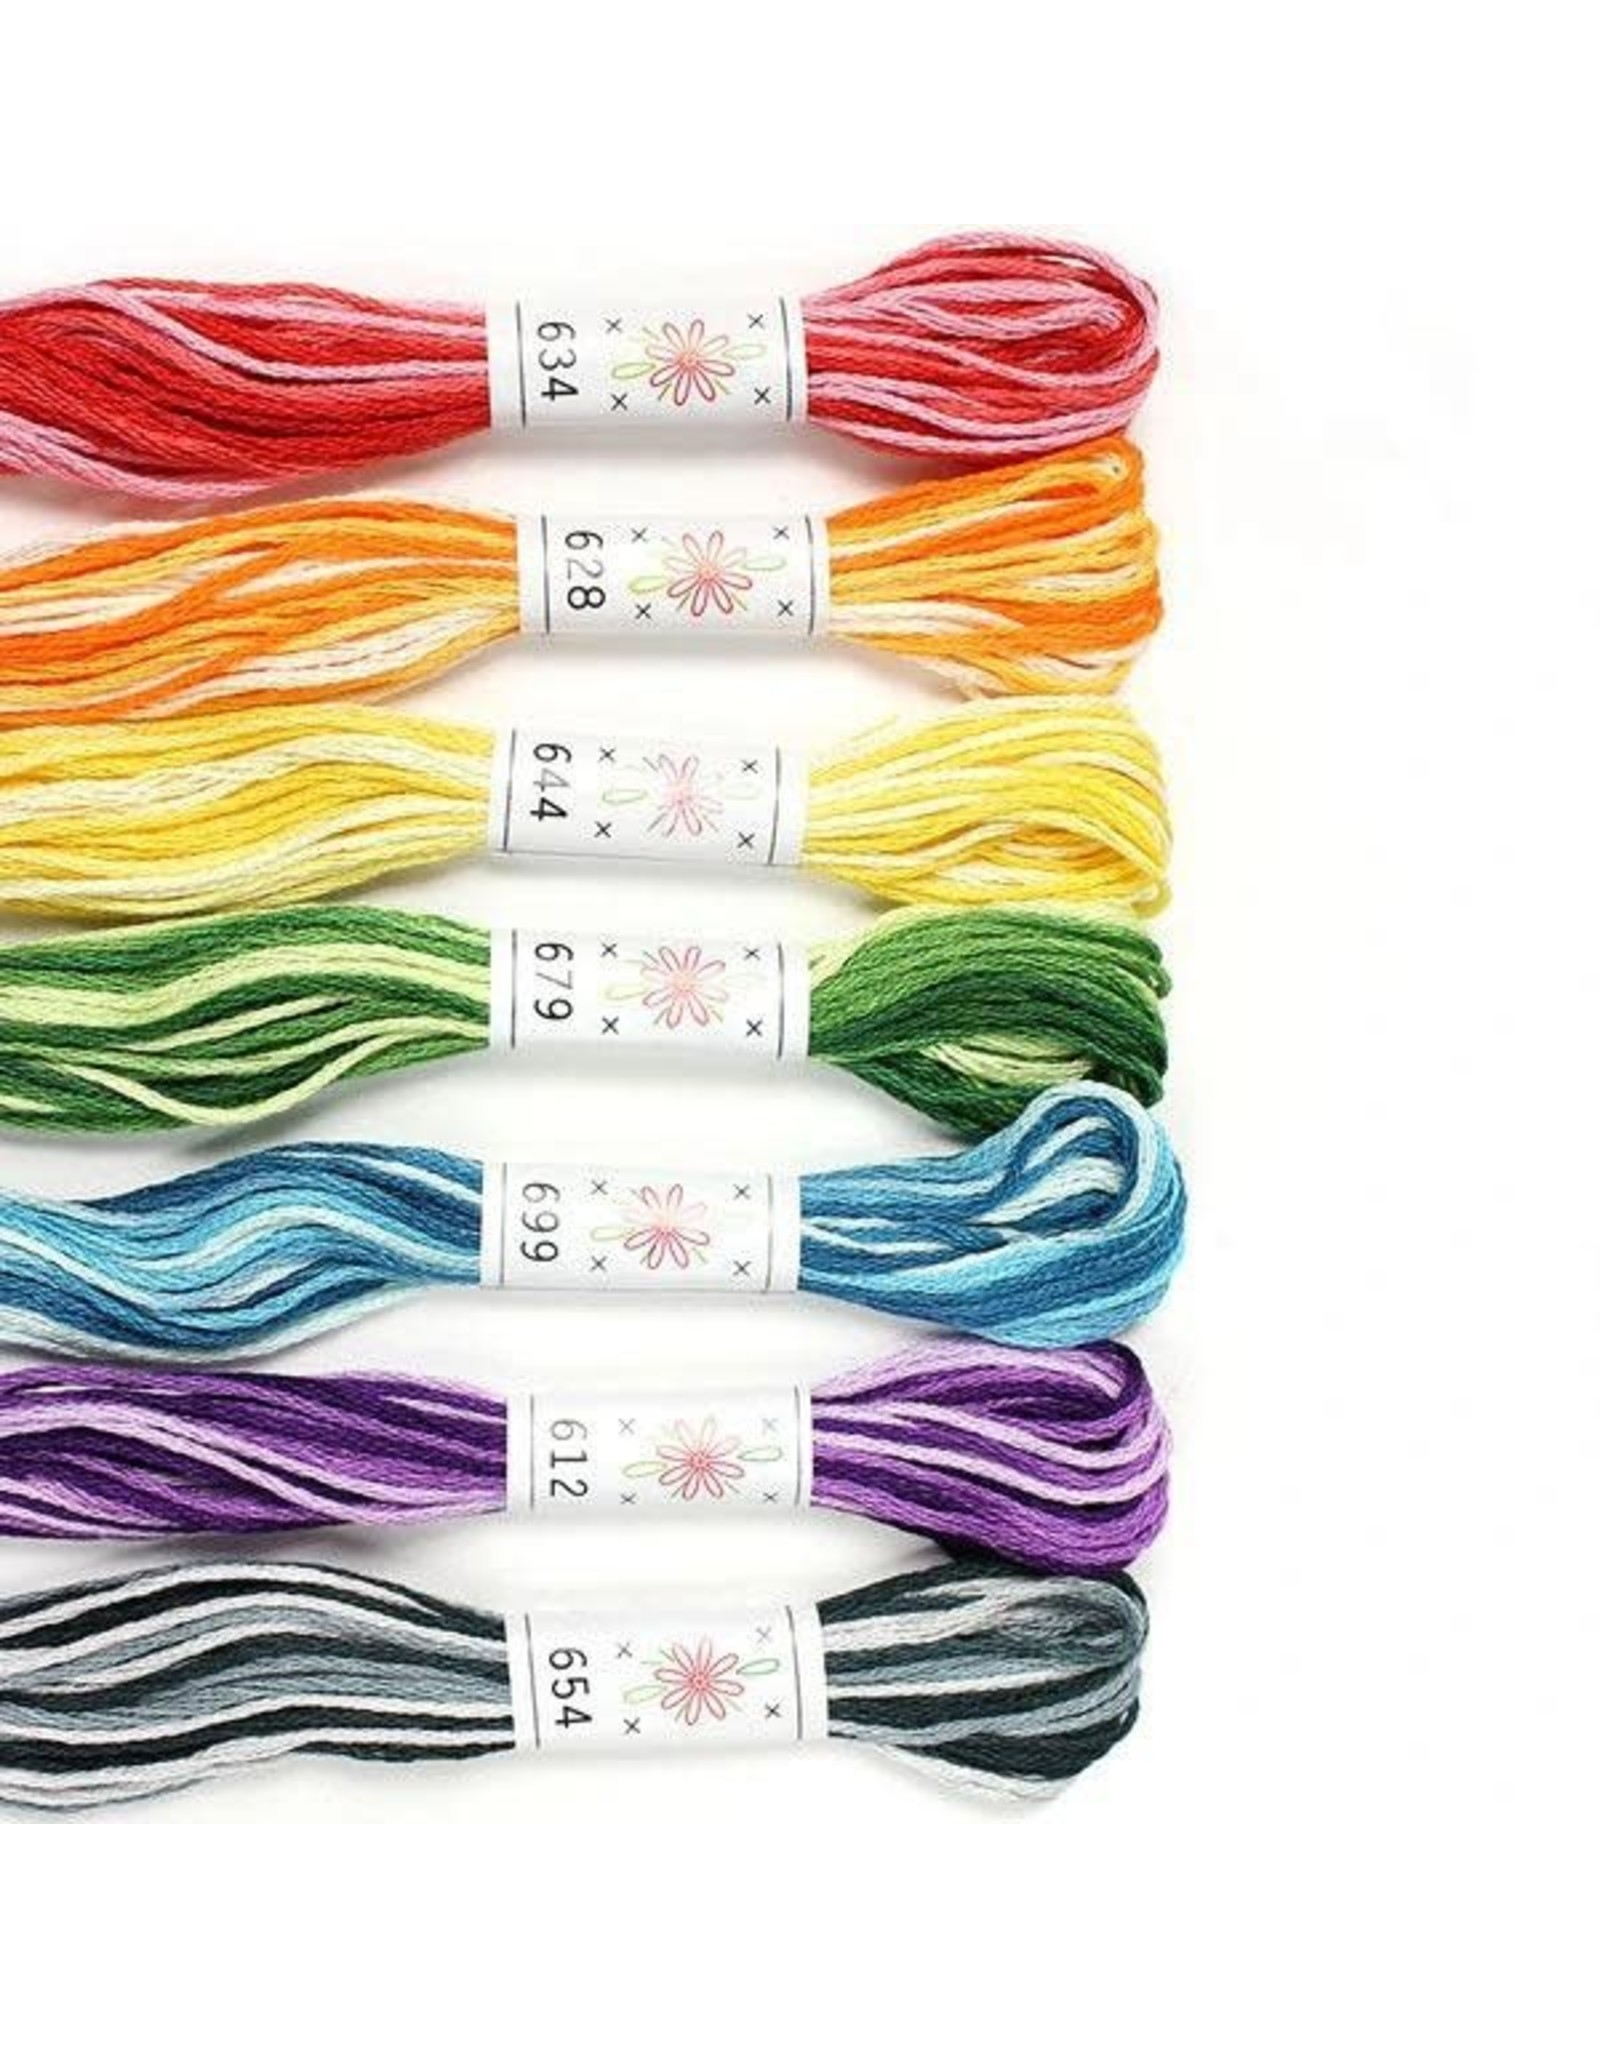 Sublime Stitching Embroidery Floss Set, Taffy Pull Palette - Seven 8.75 yard skeins